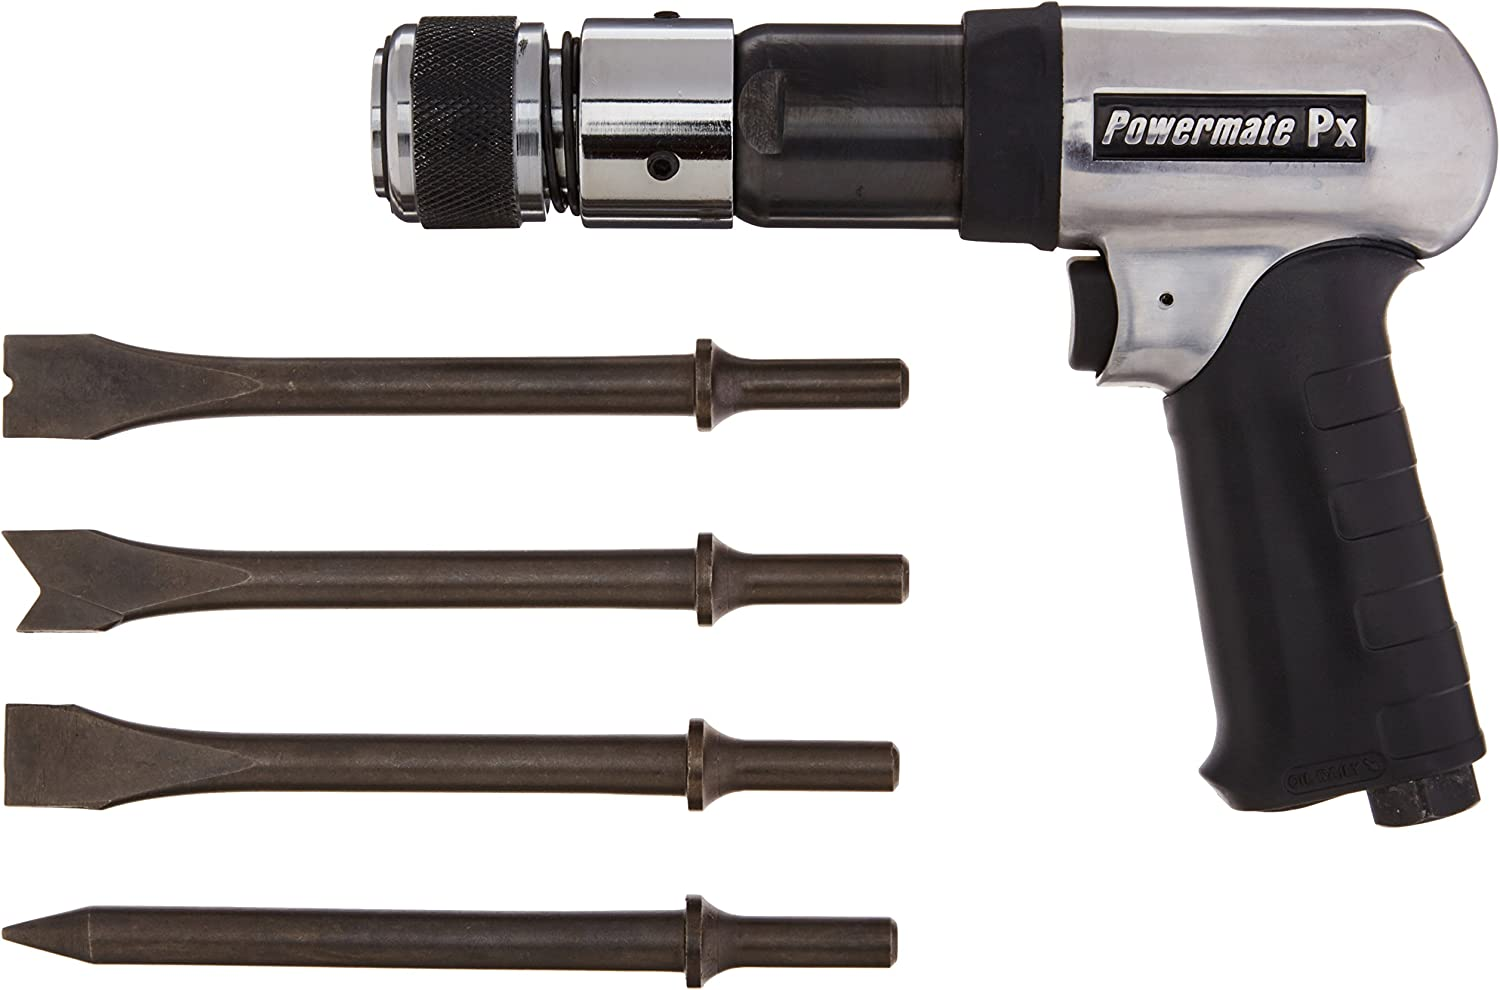 Powermate Px P024-0293SP Heavy Duty Air Hammer